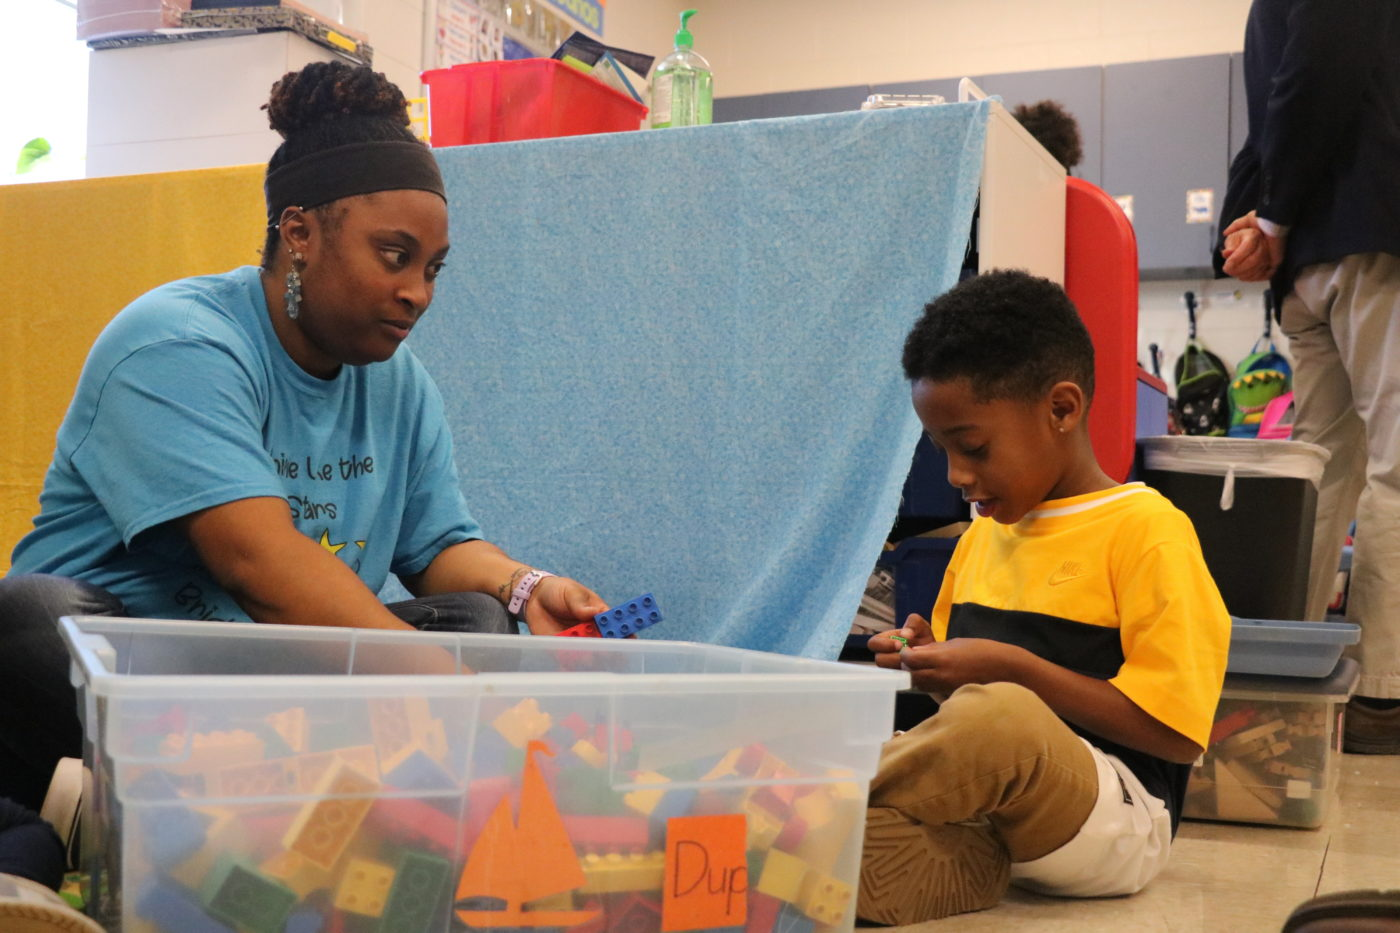 What does learning look like in high-quality preschools?